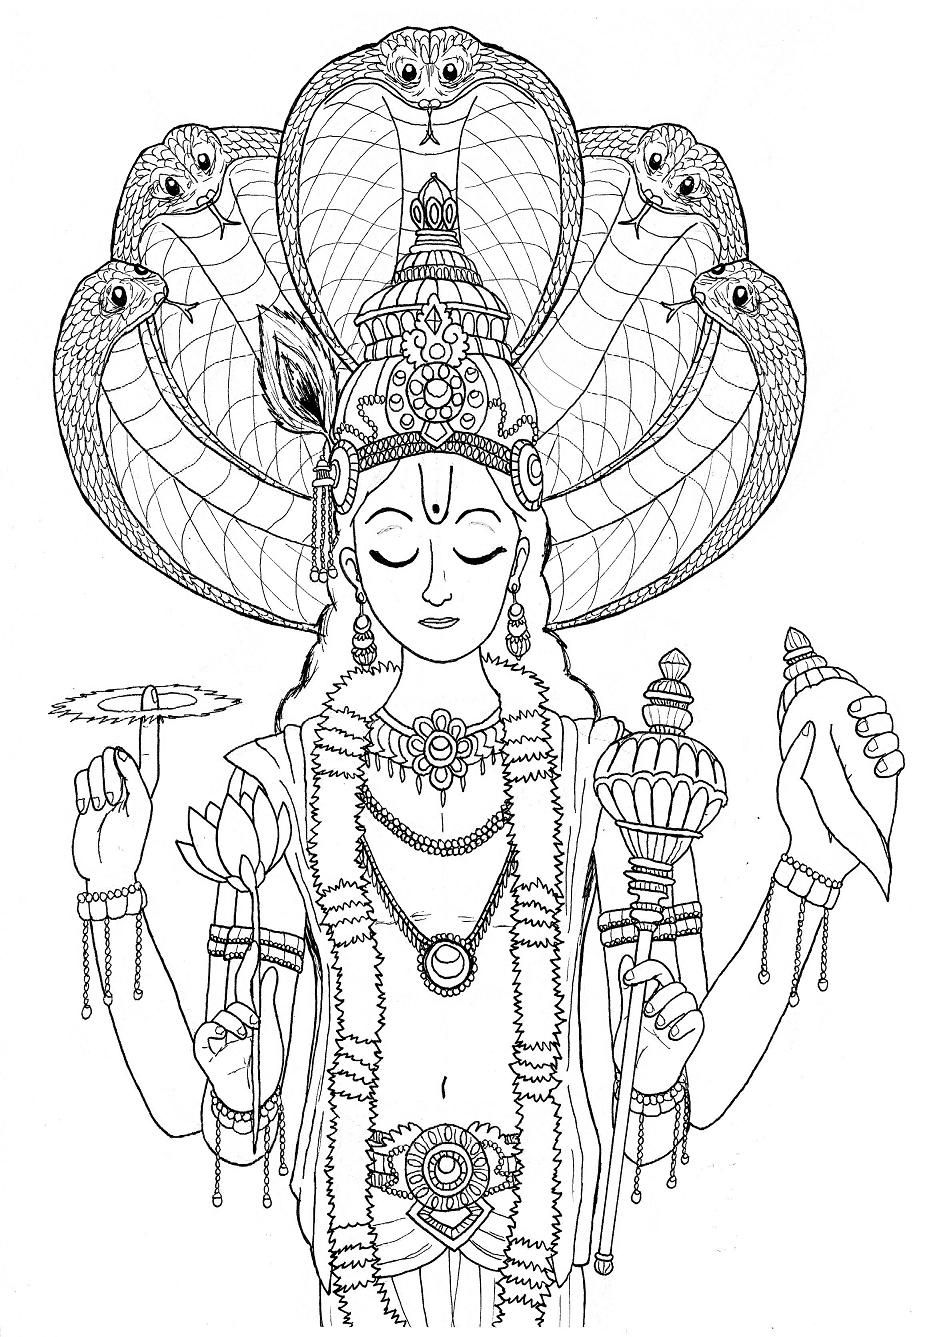 lord brahma coloring pages - photo#25